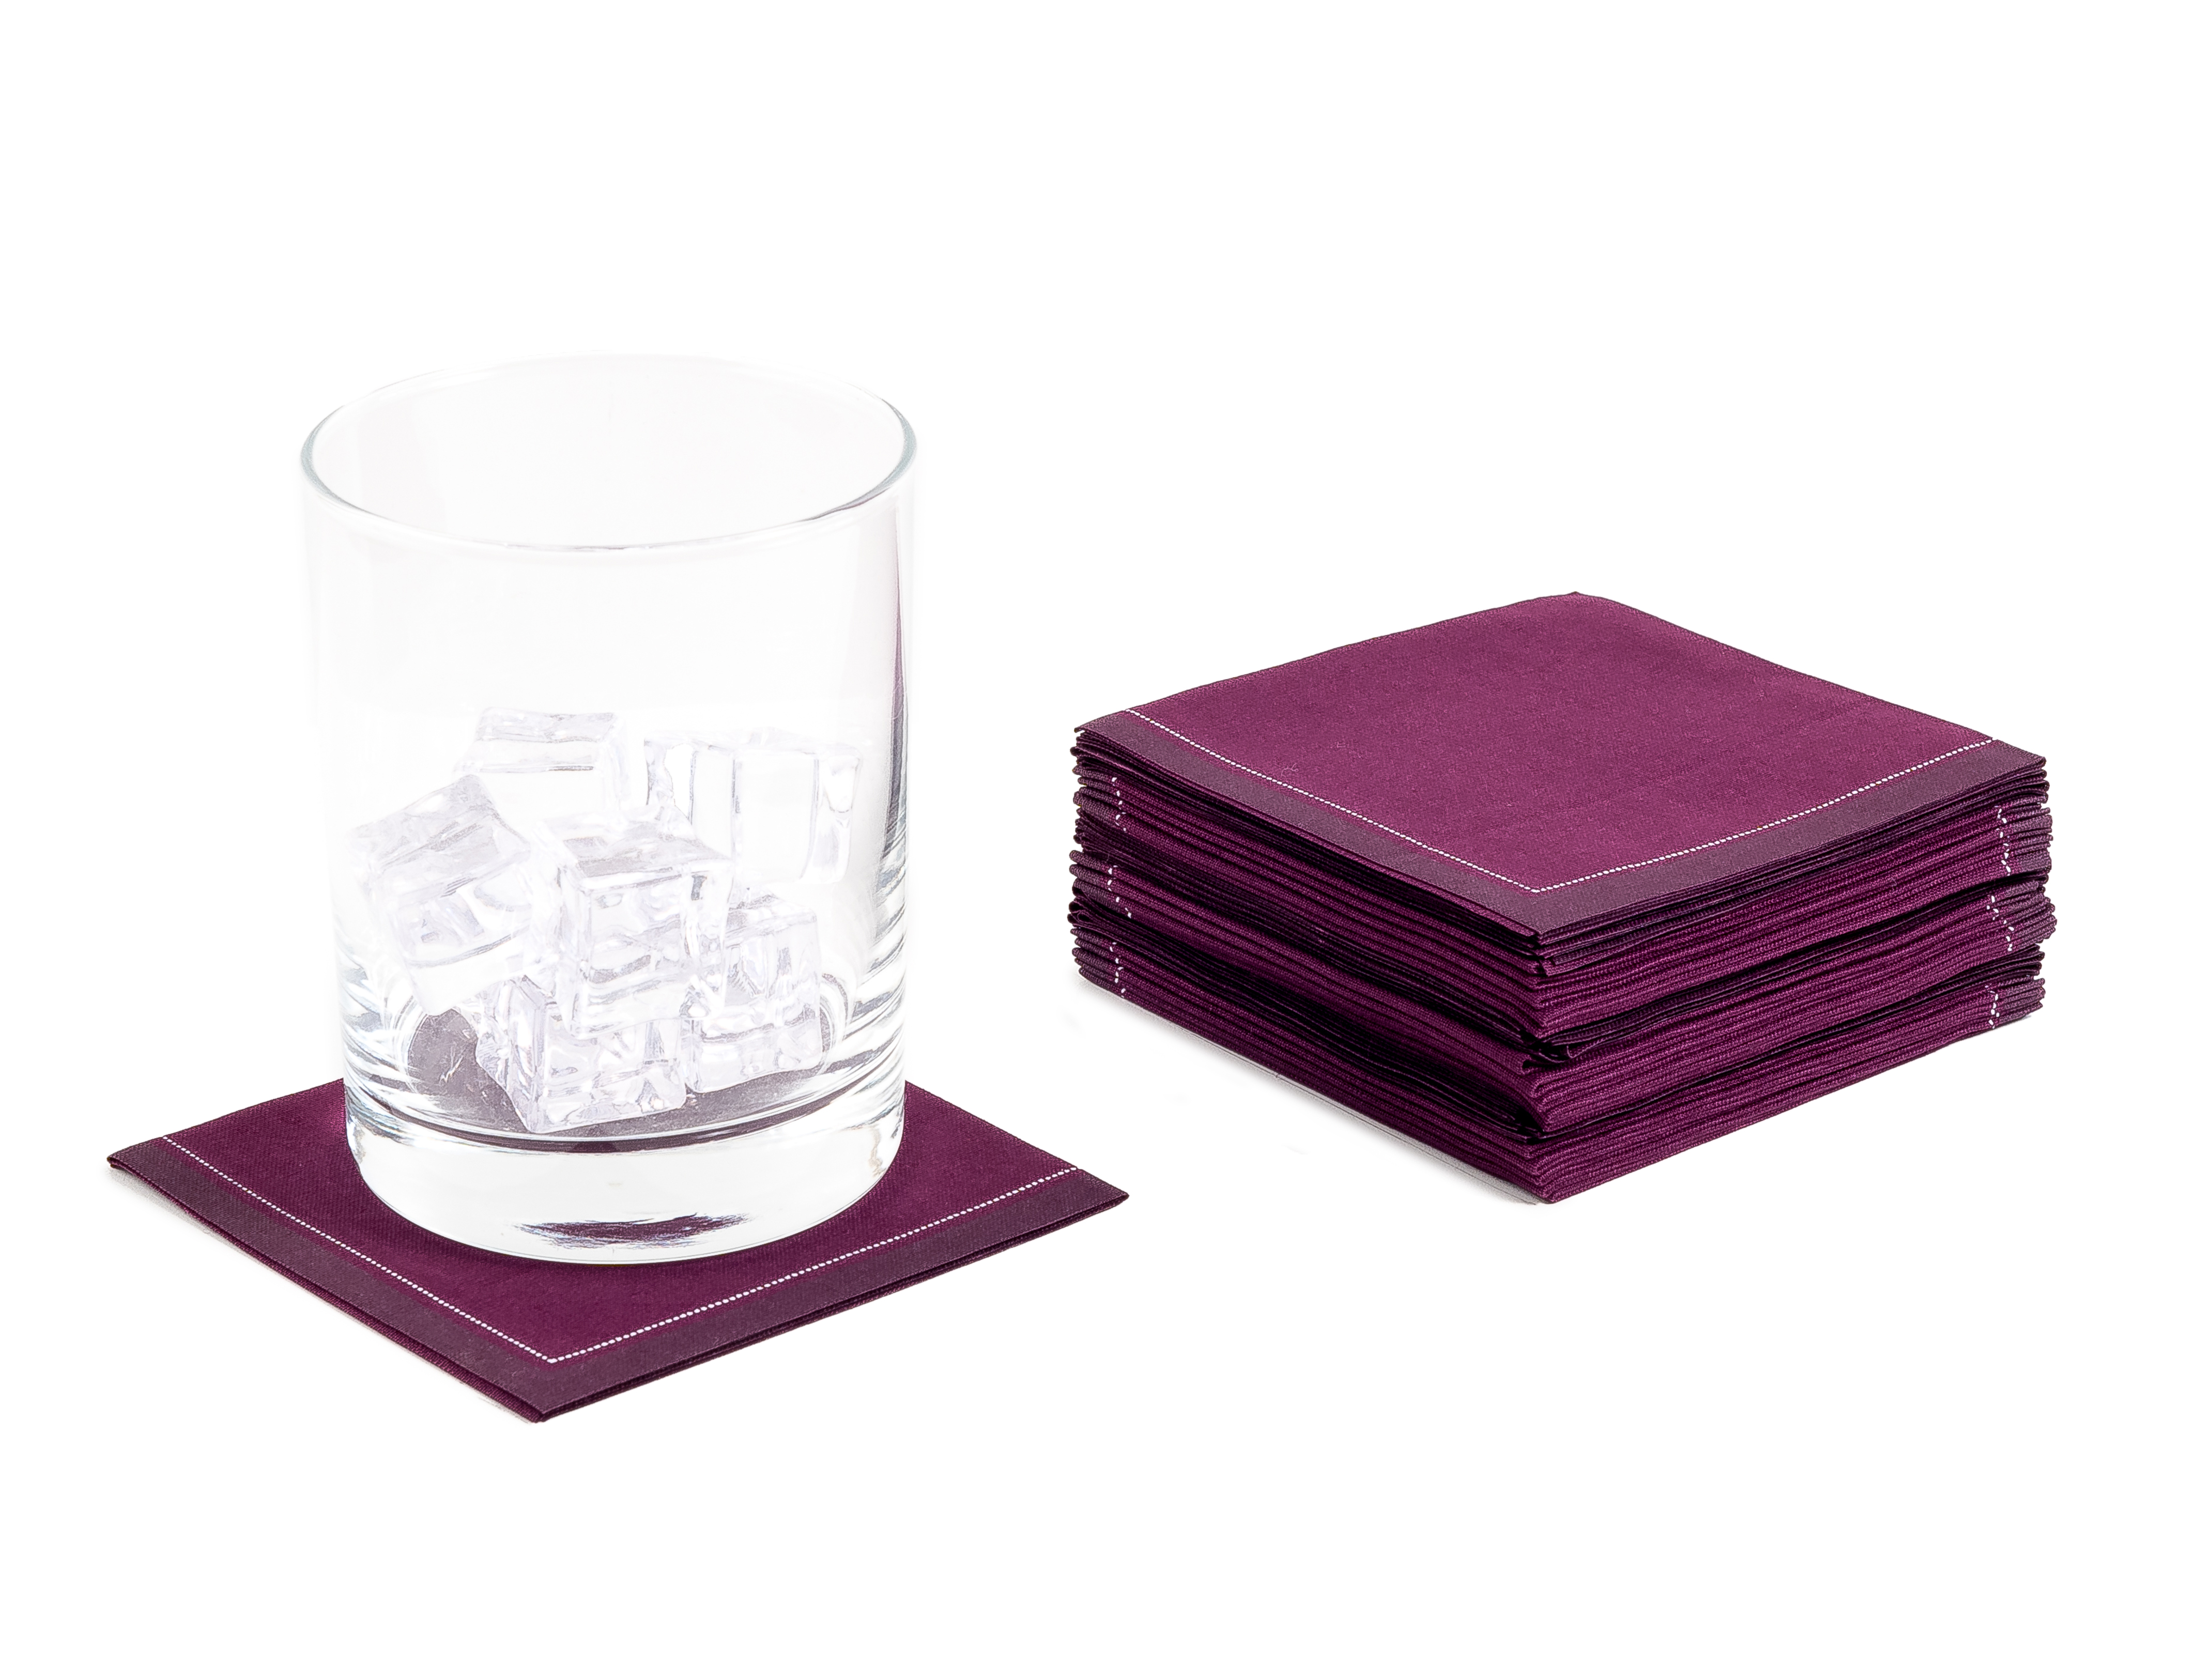 "Pickled Beet Cotton 1/4 Fold Cocktail (140 GSM) - 8"" x 8"" (folded 4"" x 4"")- 600 units"